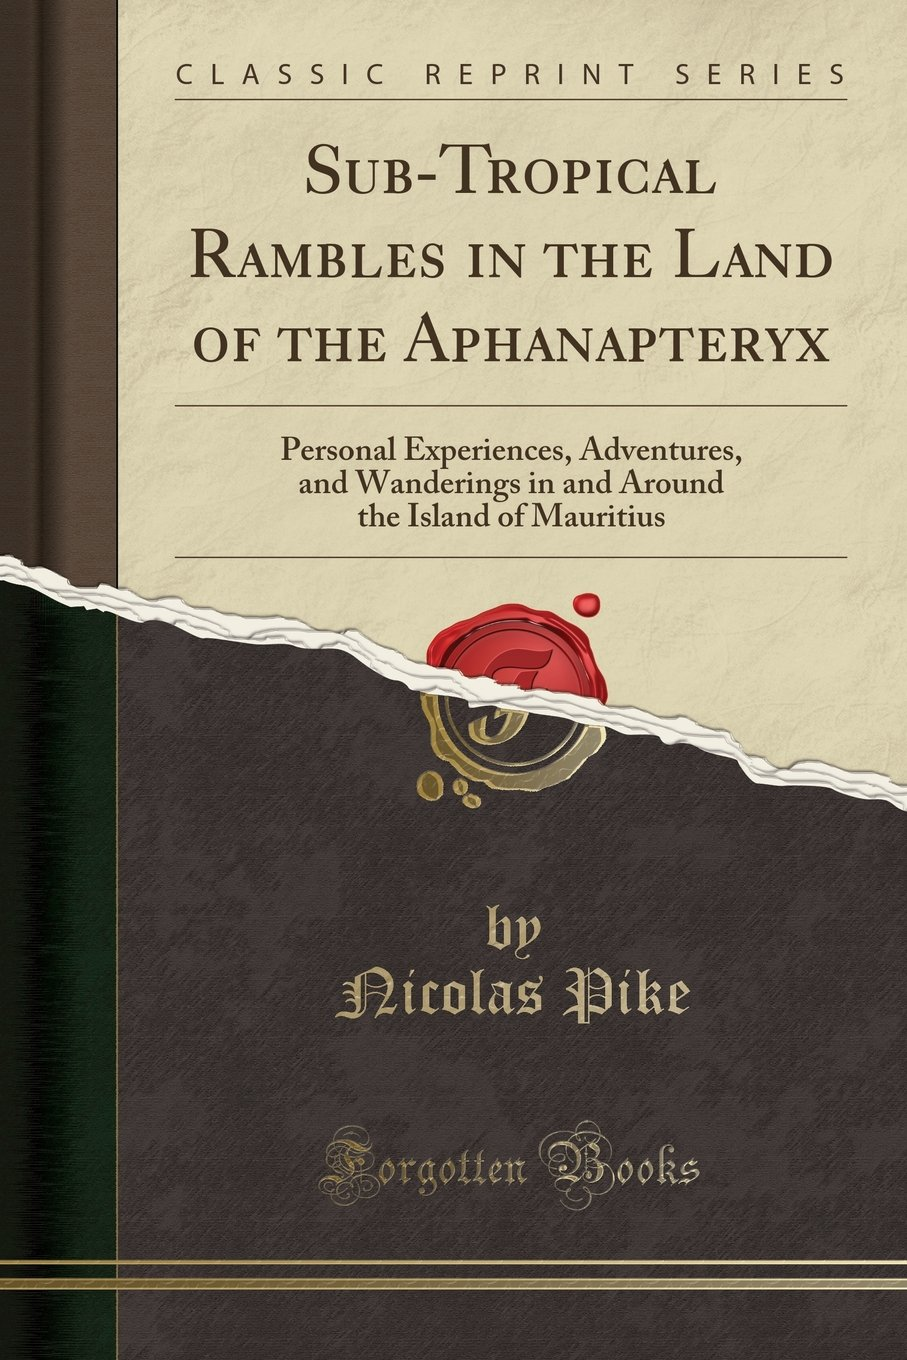 Sub-Tropical Rambles in the Land of the Aphanapteryx: Personal Experiences, Adventures, and Wanderings in and Around the Island of Mauritius (Classic Reprint)